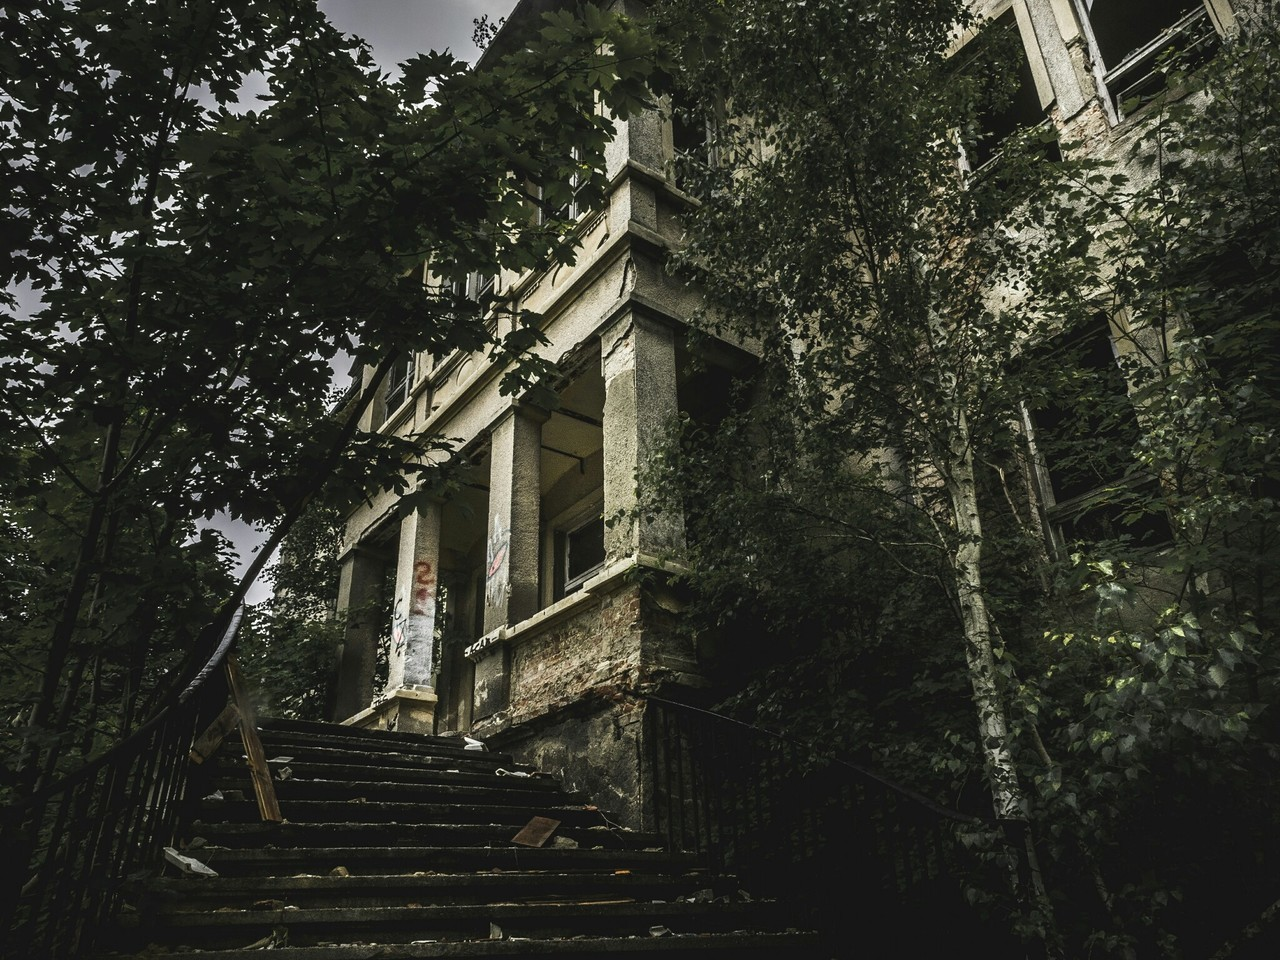 horror+, abandoned+, and lostplace+ image